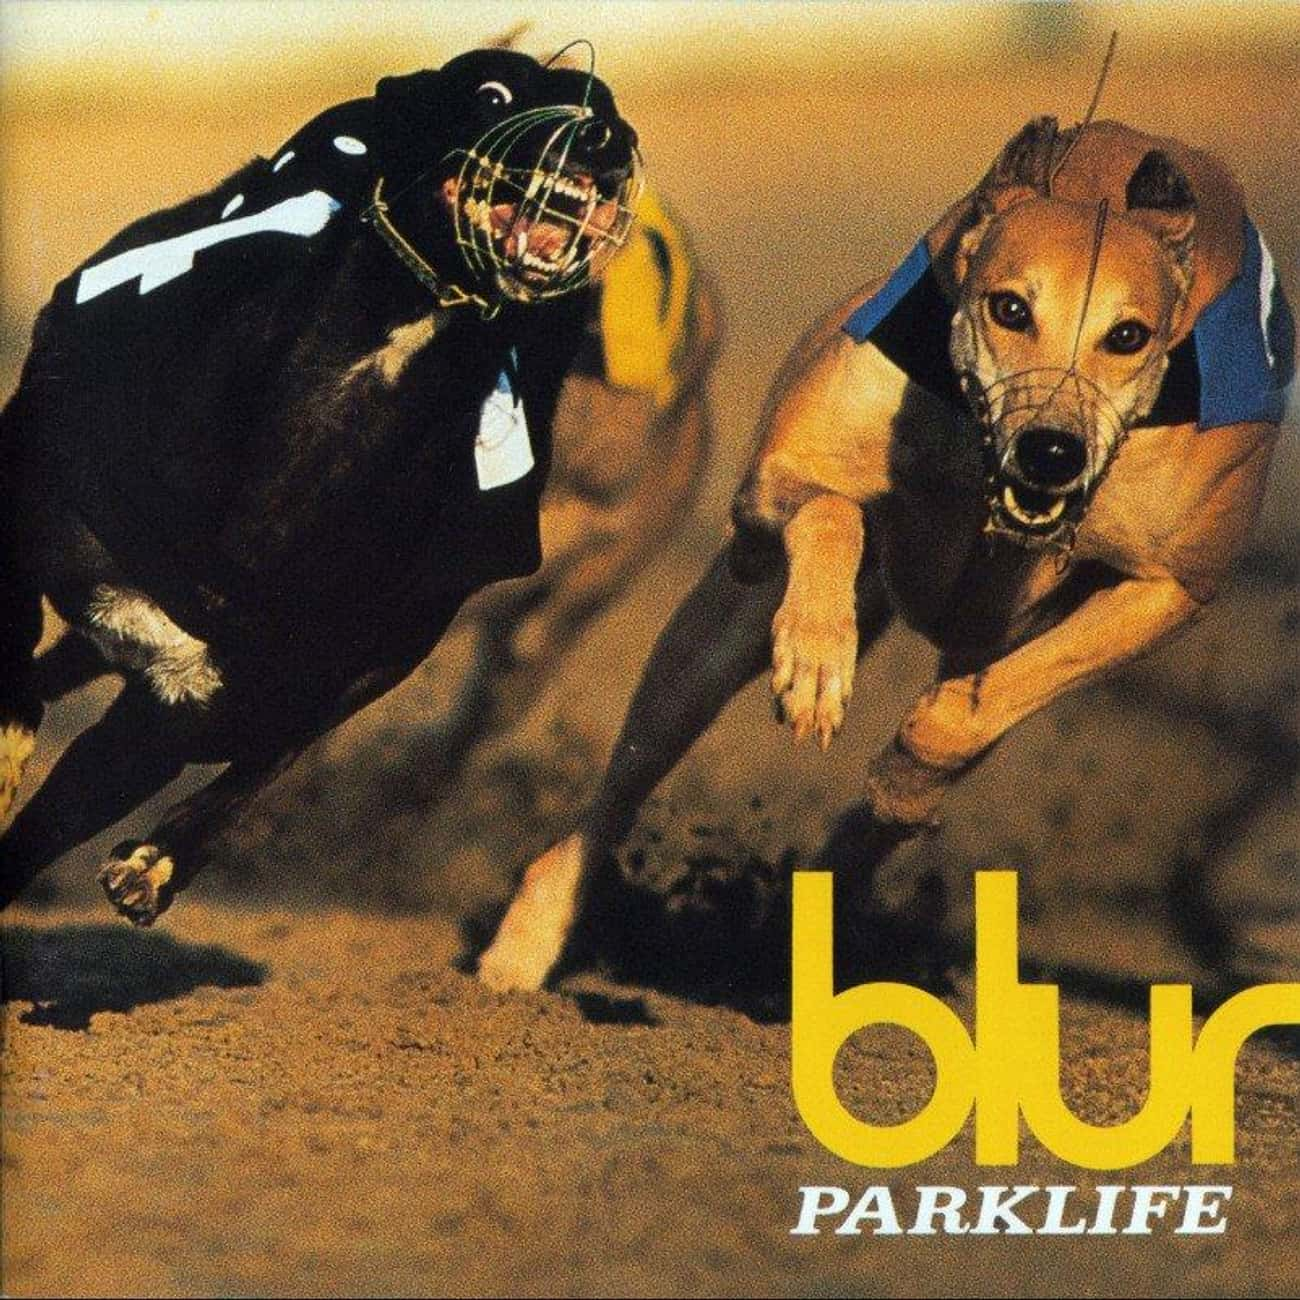 Parklife is listed (or ranked) 1 on the list The Best Blur Albums of All Time